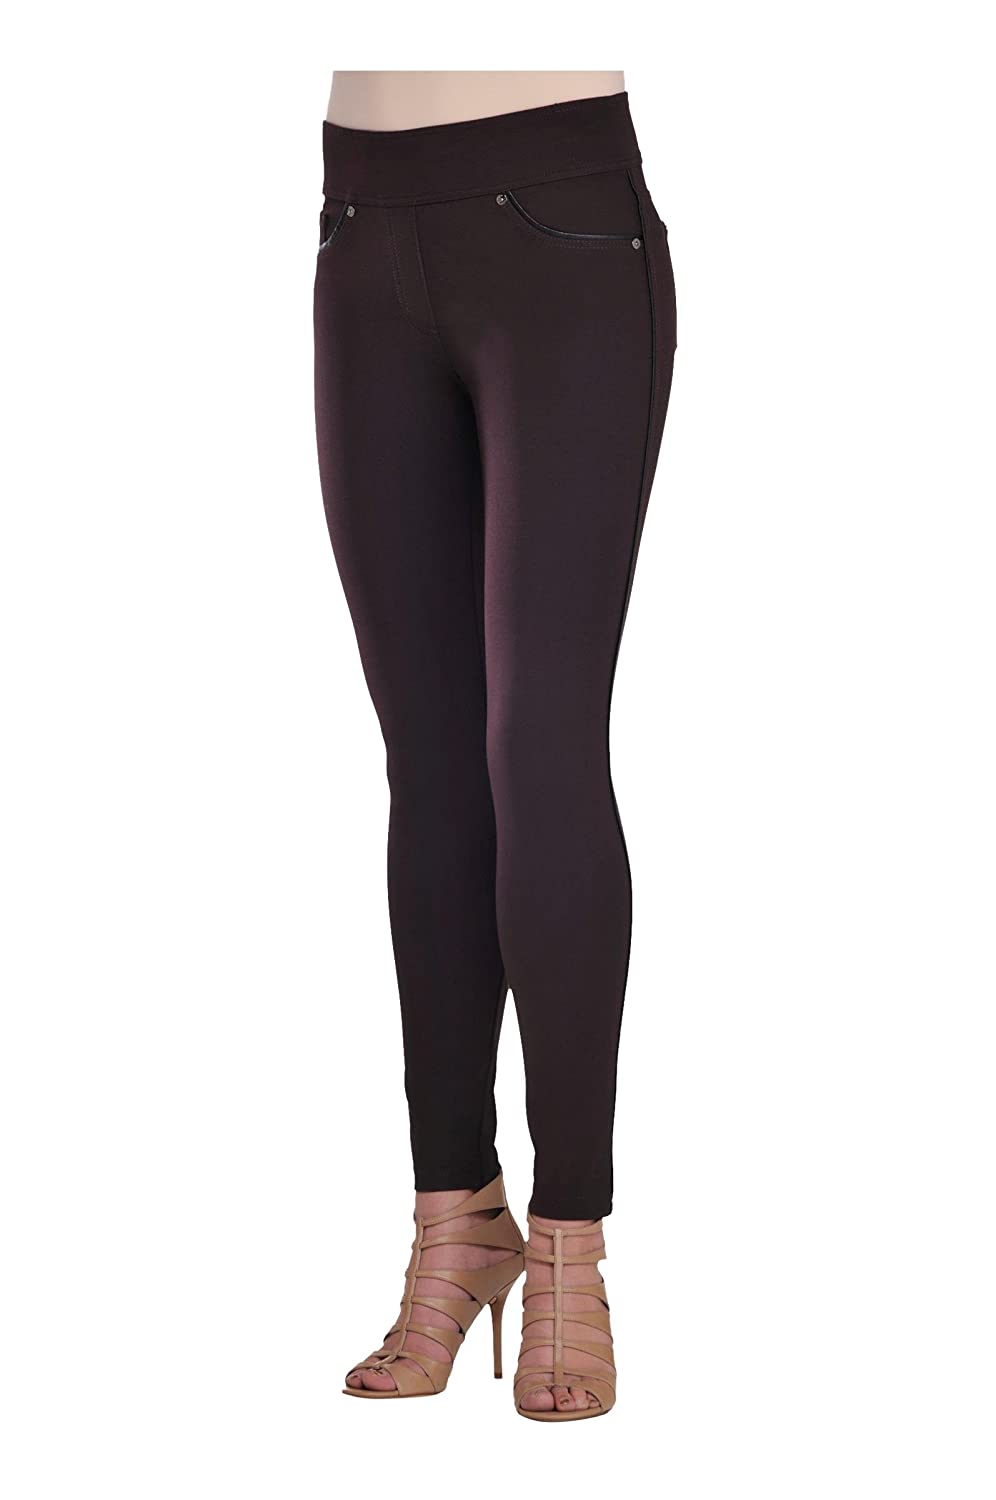 NYGÅRD SLIMS Nygard Women's Plus Size Slims 2.5 Jegging With Piping